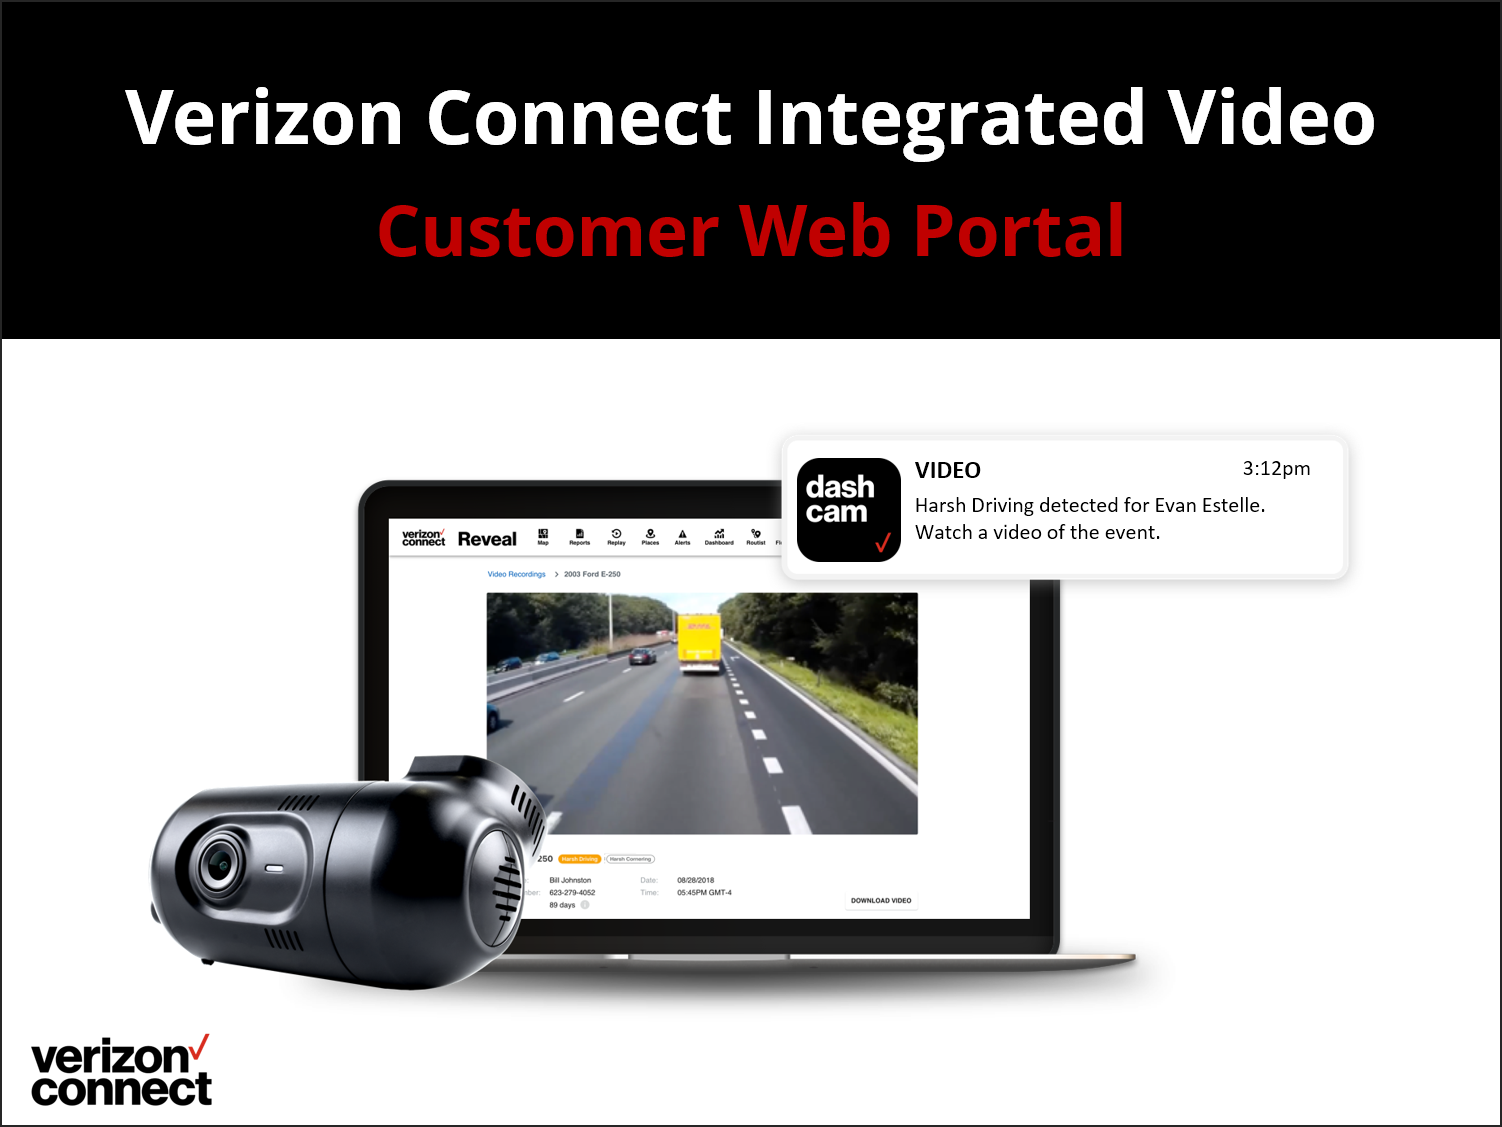 Verizon Connect Integrated Video eTutorial